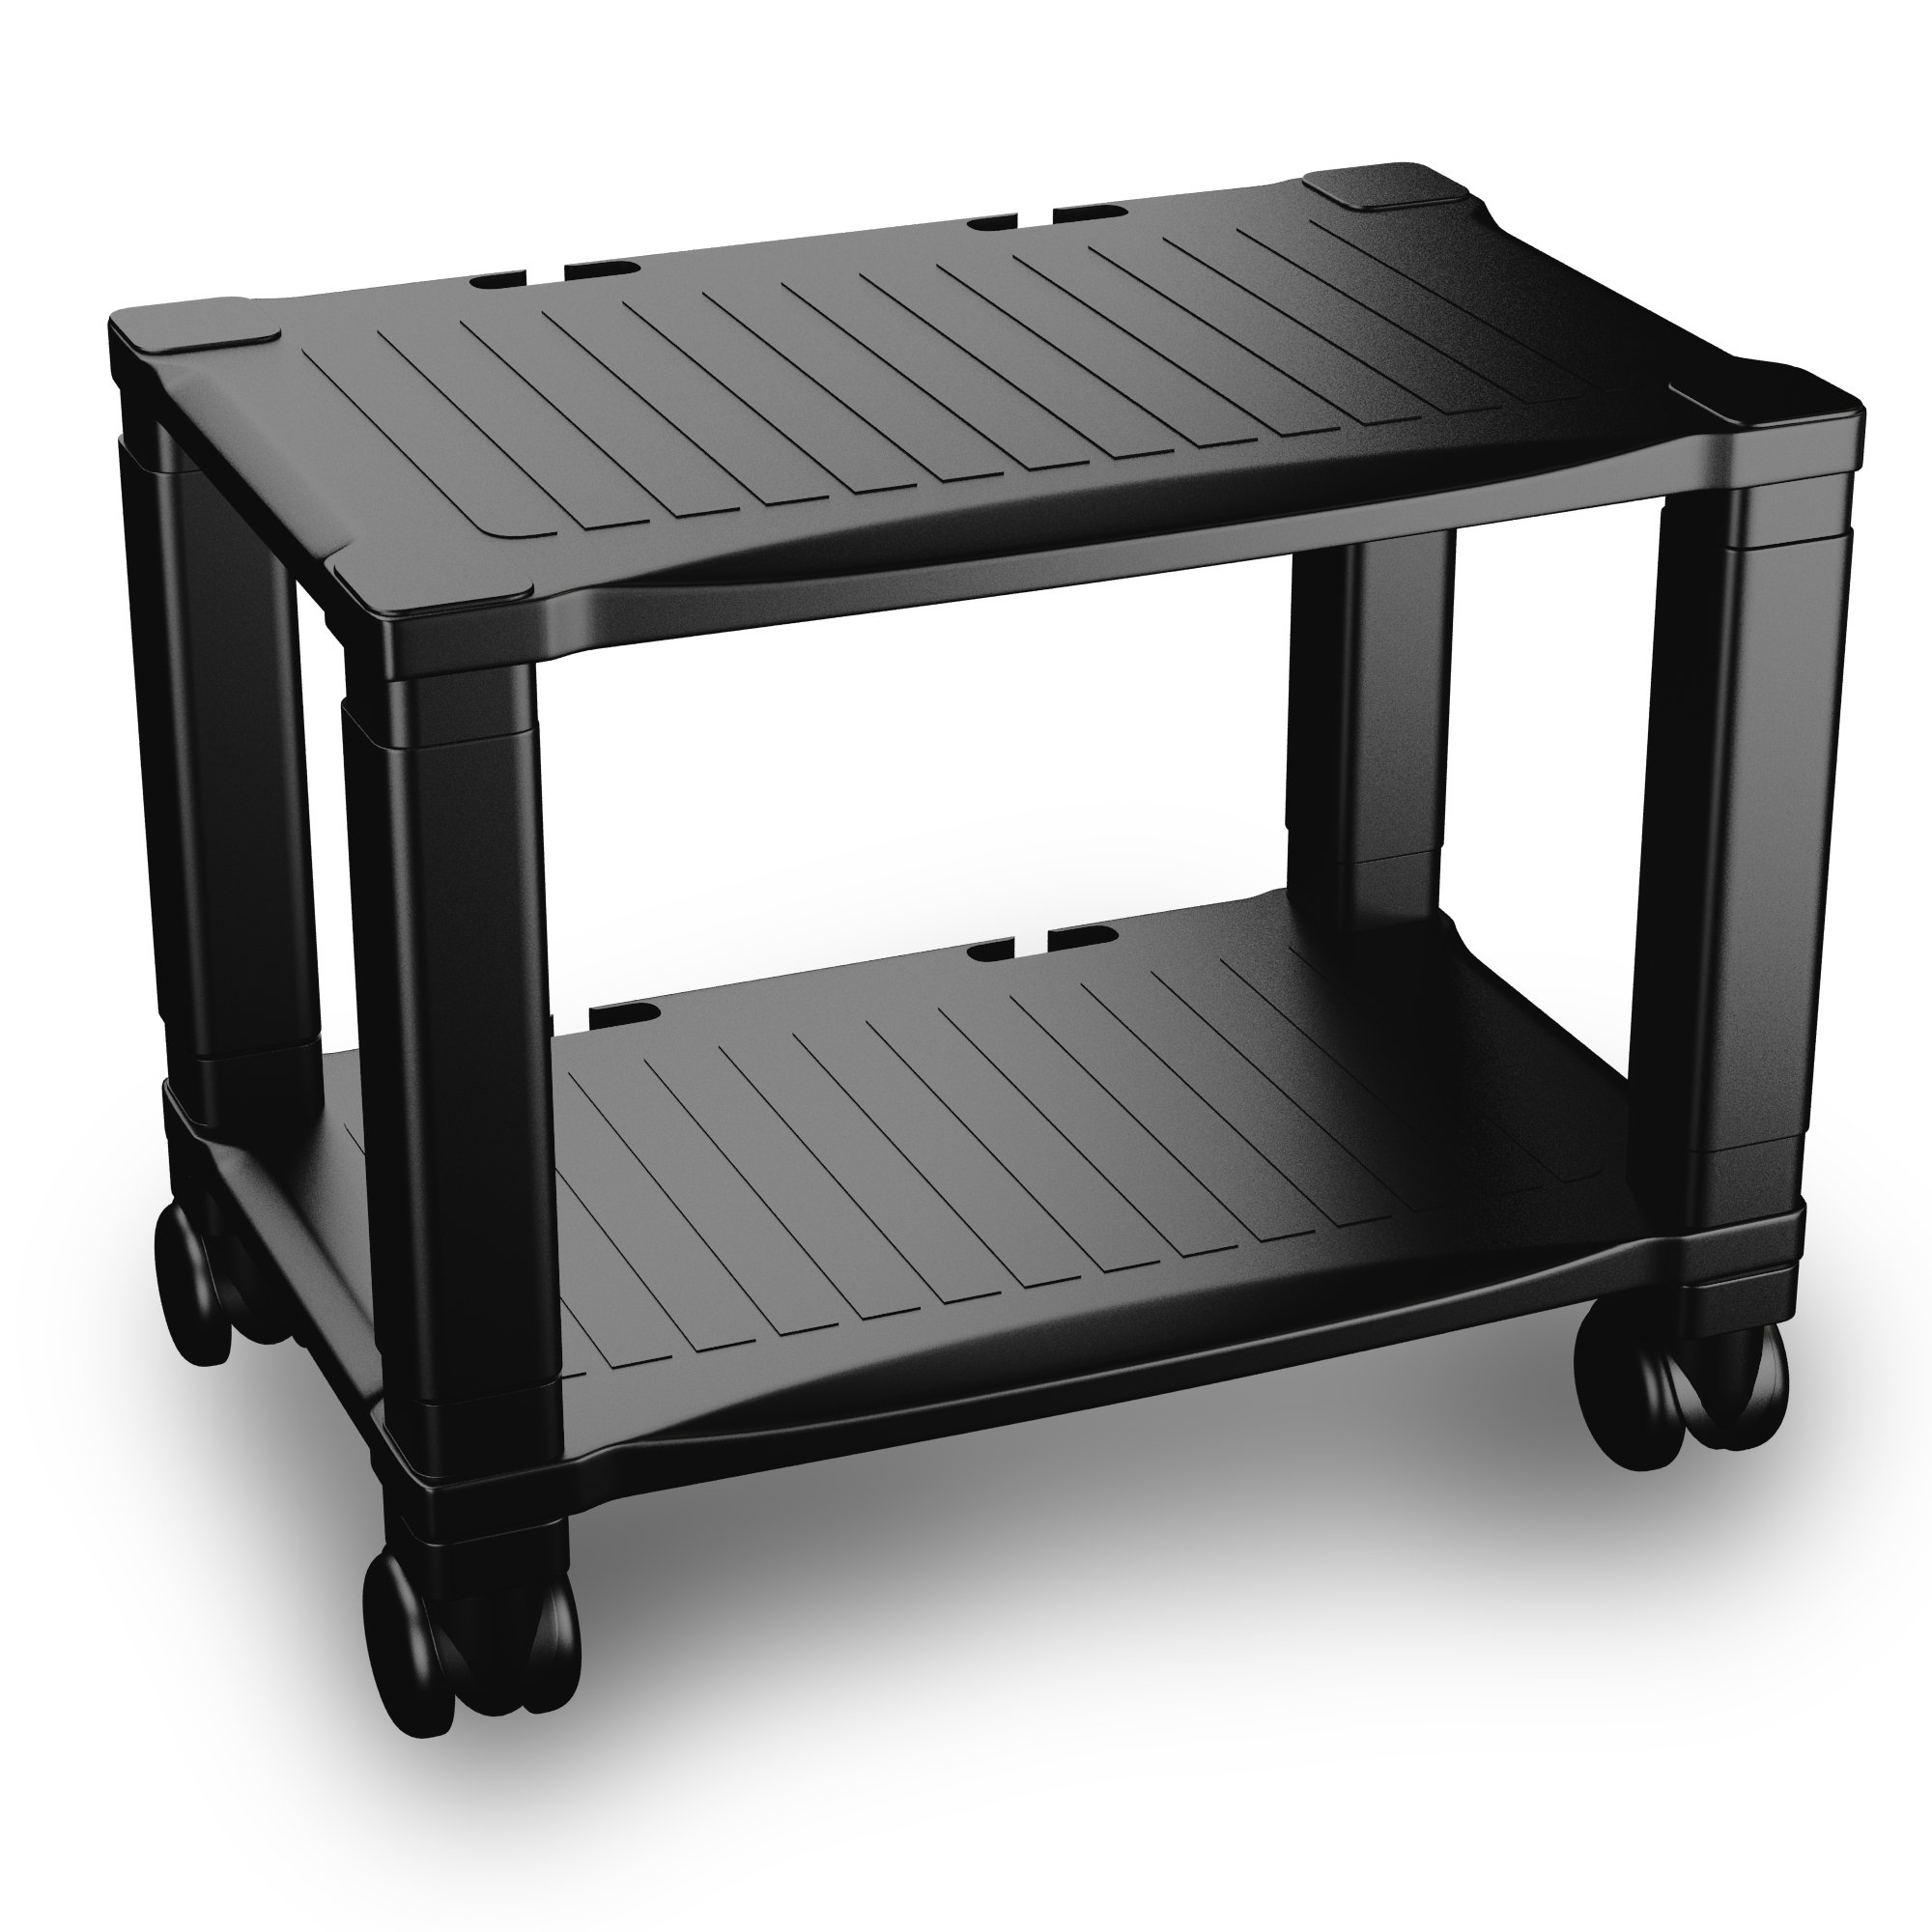 Printer Stand HC-2401 Stand-2-Tier Under Desk Table for Fax, Scanner, Office Supplies-Compact and Mobile with Wheels for Portable Storage by Home-Complete